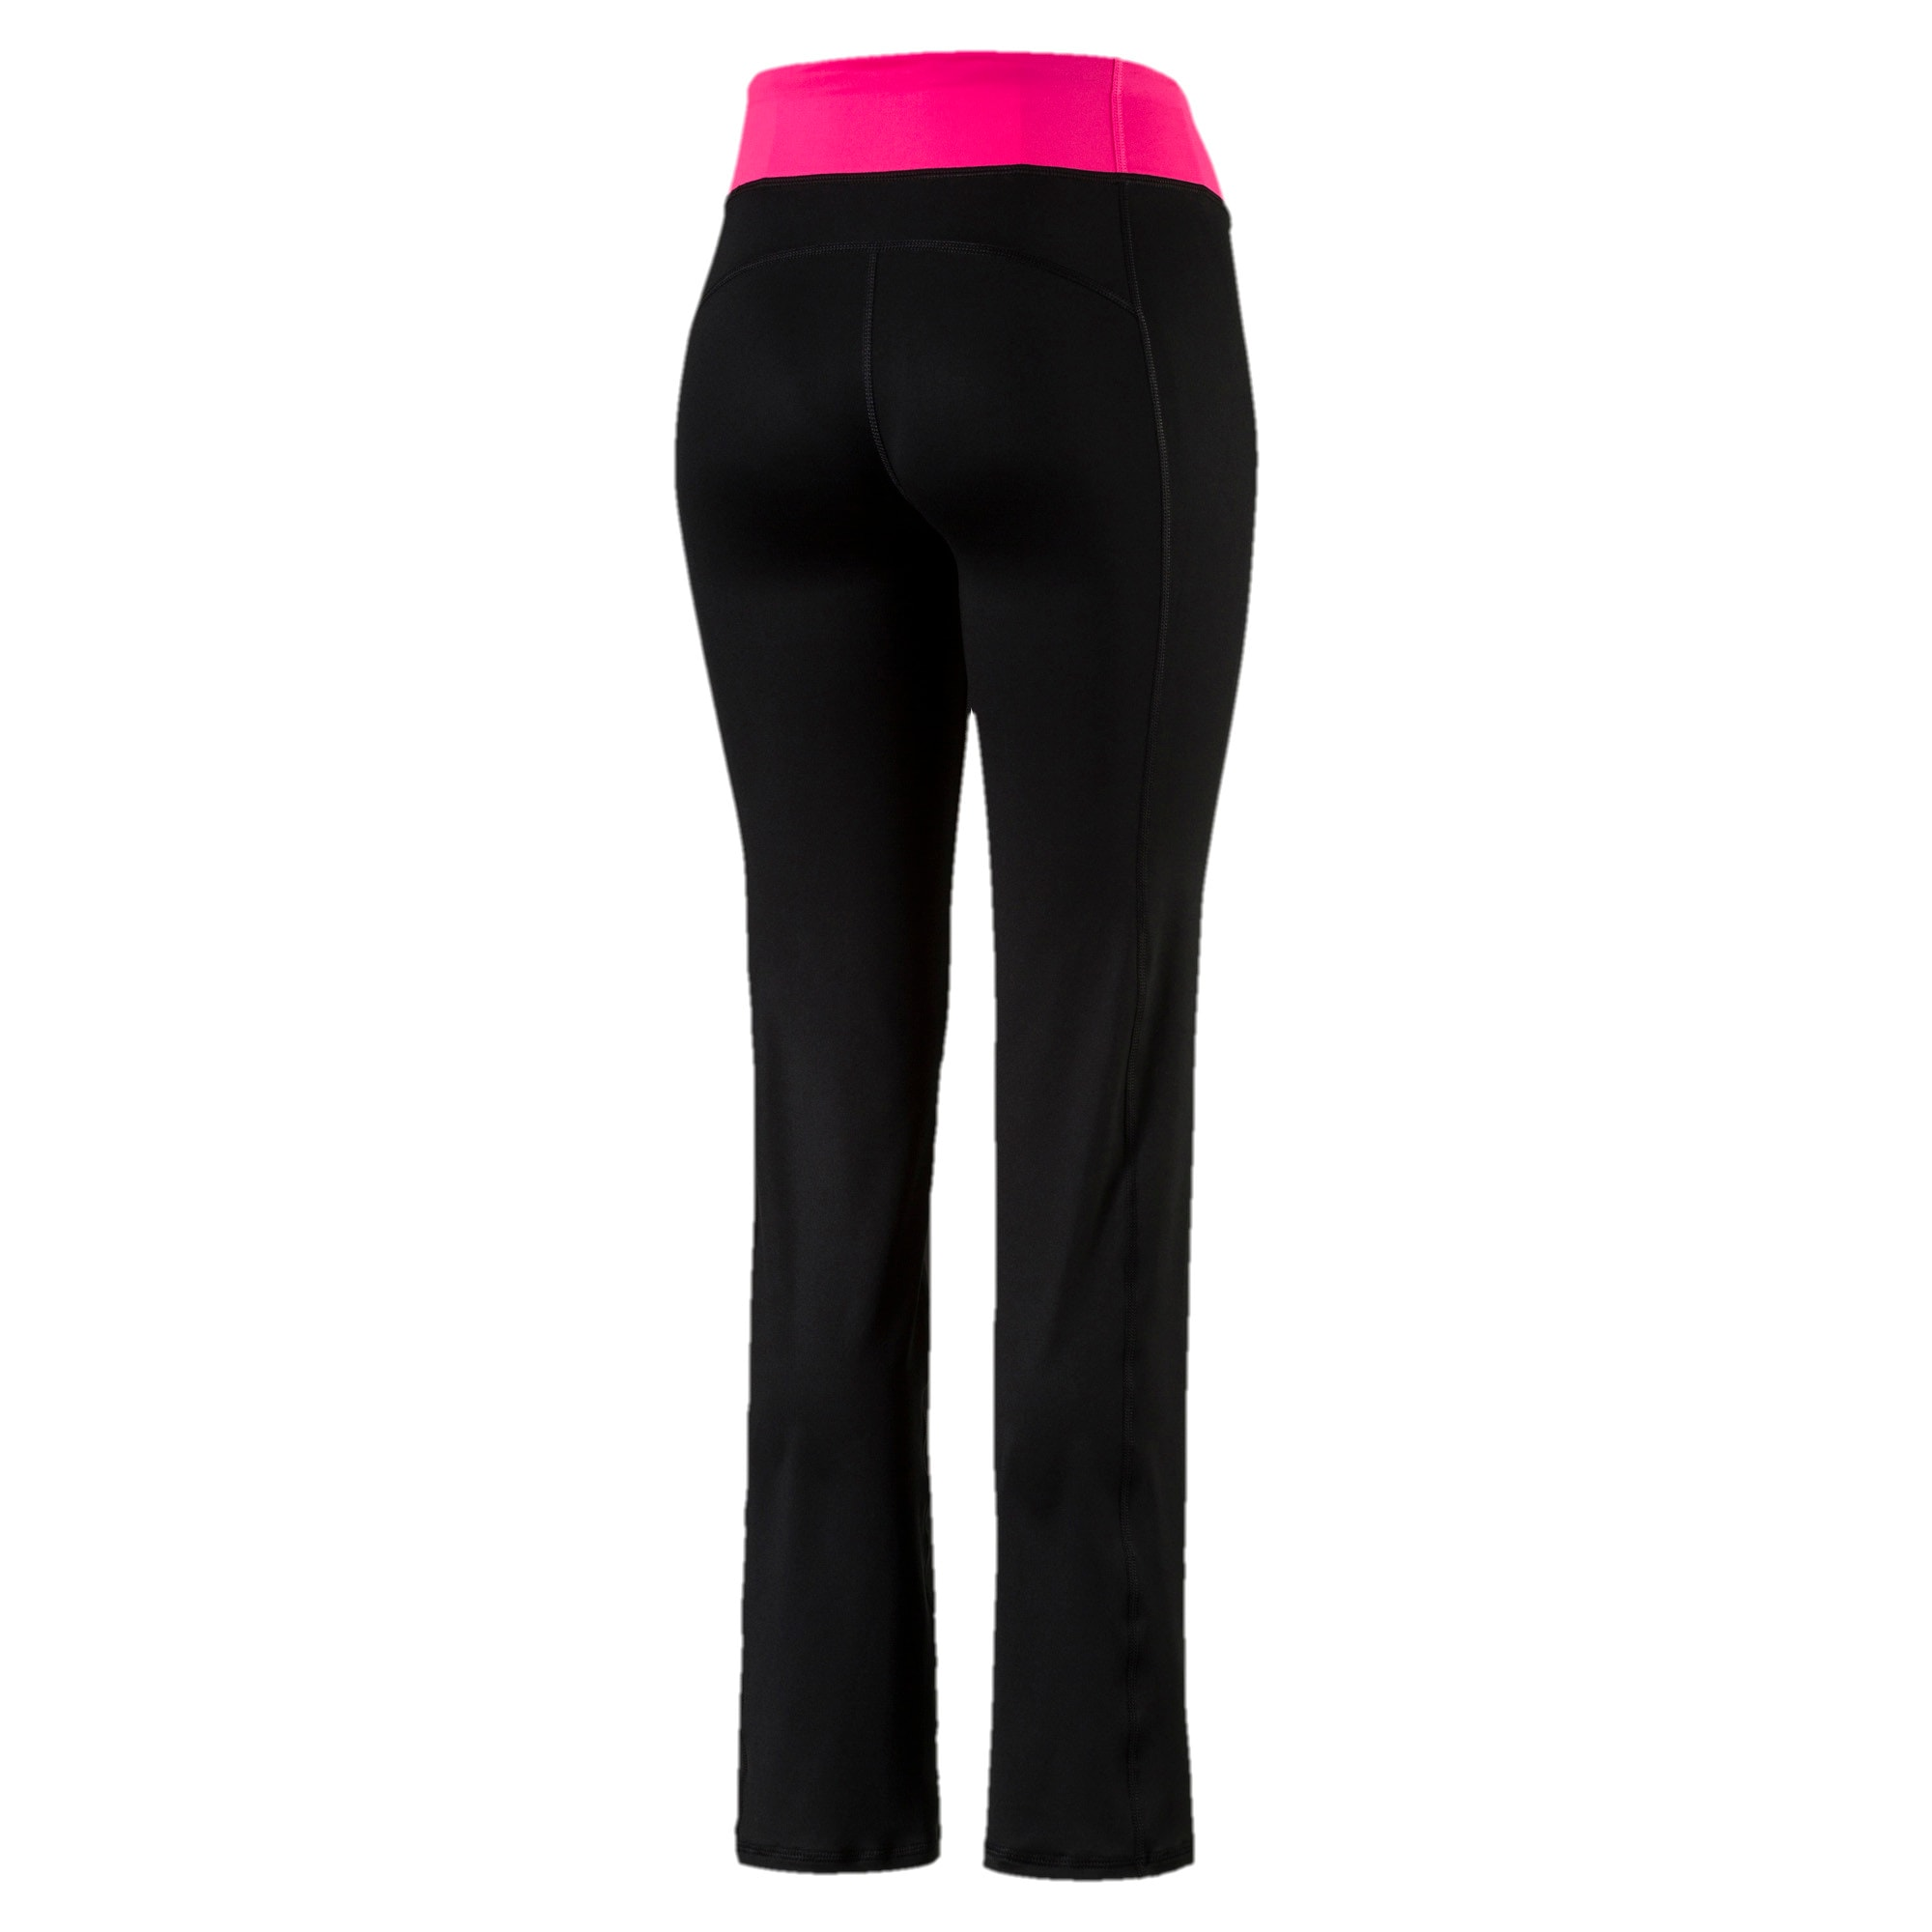 Thumbnail 4 of Training Women's Essential Straight Leg Pants, Puma Black-KNOCKOUT PINK, medium-IND